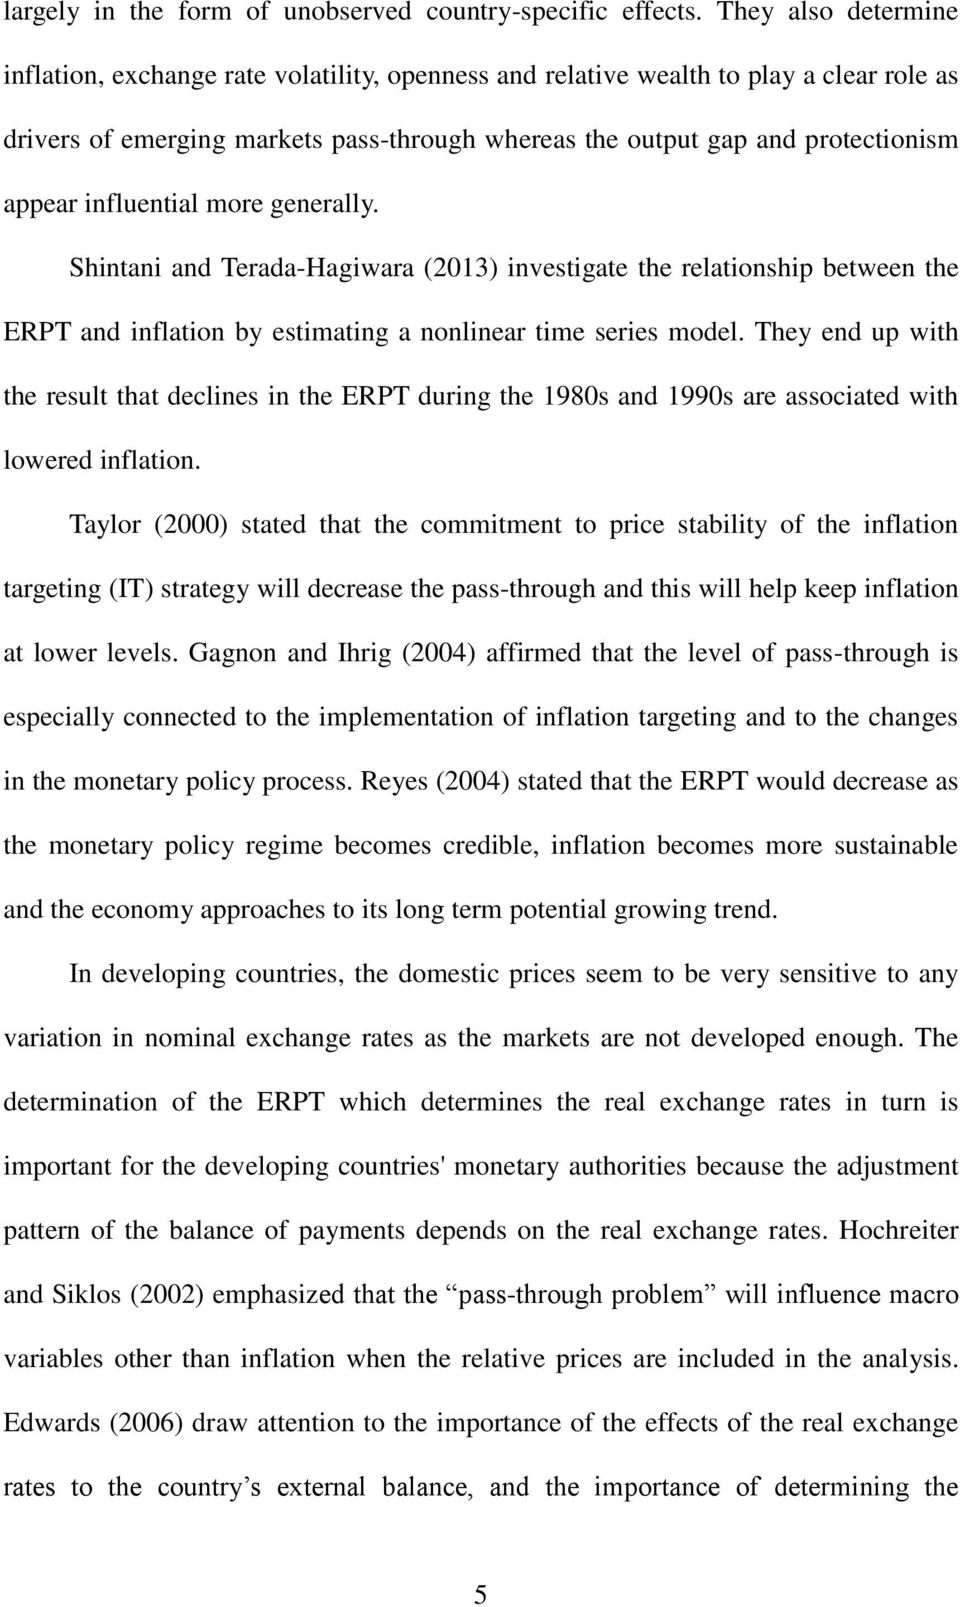 influential more generally. Shintani and Terada-Hagiwara (2013) investigate the relationship between the ERPT and inflation by estimating a nonlinear time series model.